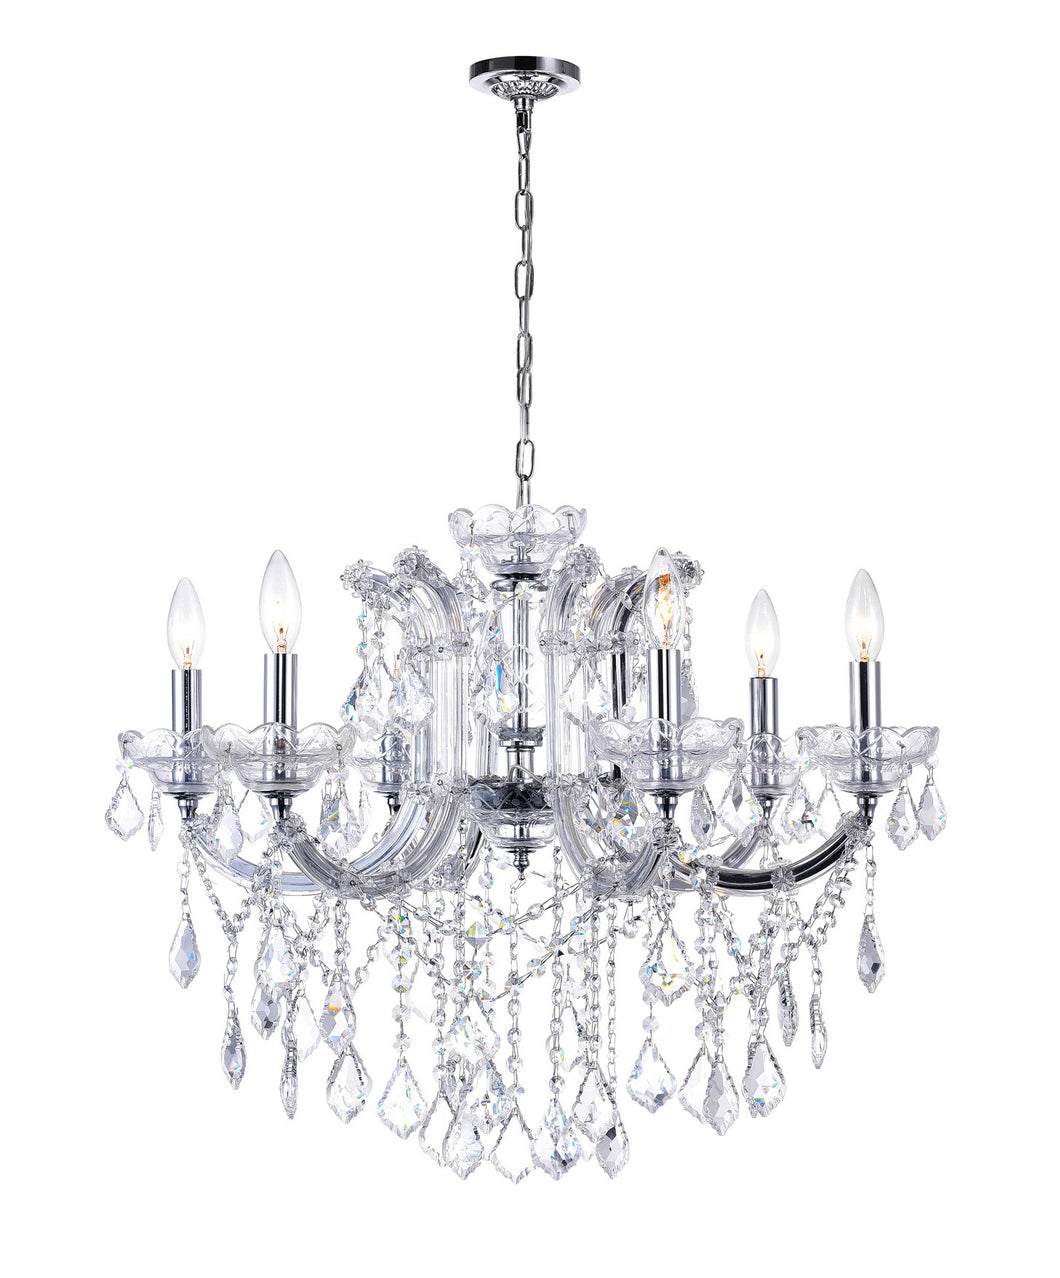 6 LIGHT UP CHANDELIER WITH CHROME FINISH - Dreamart Gallery